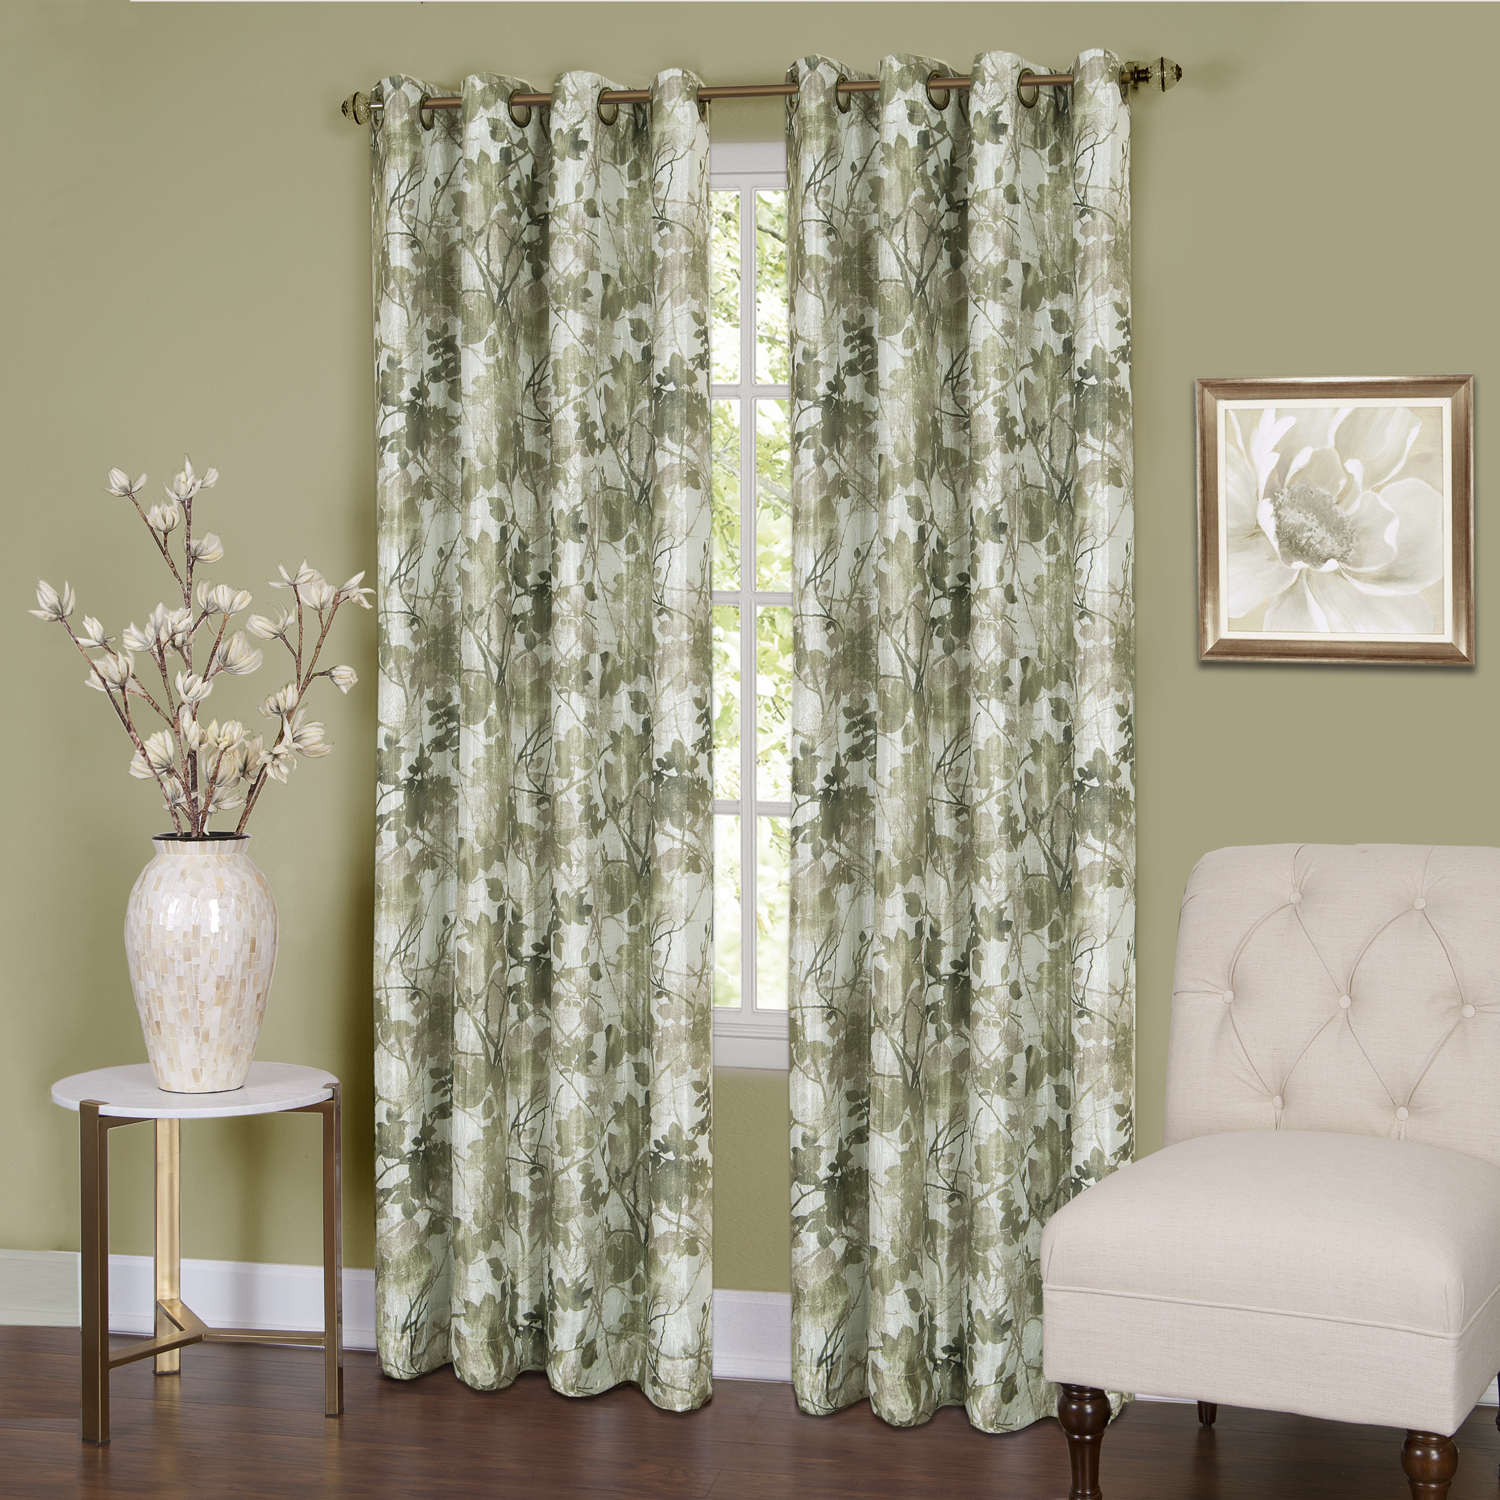 Tranquil - Lined Grommet Window Curtain Panel